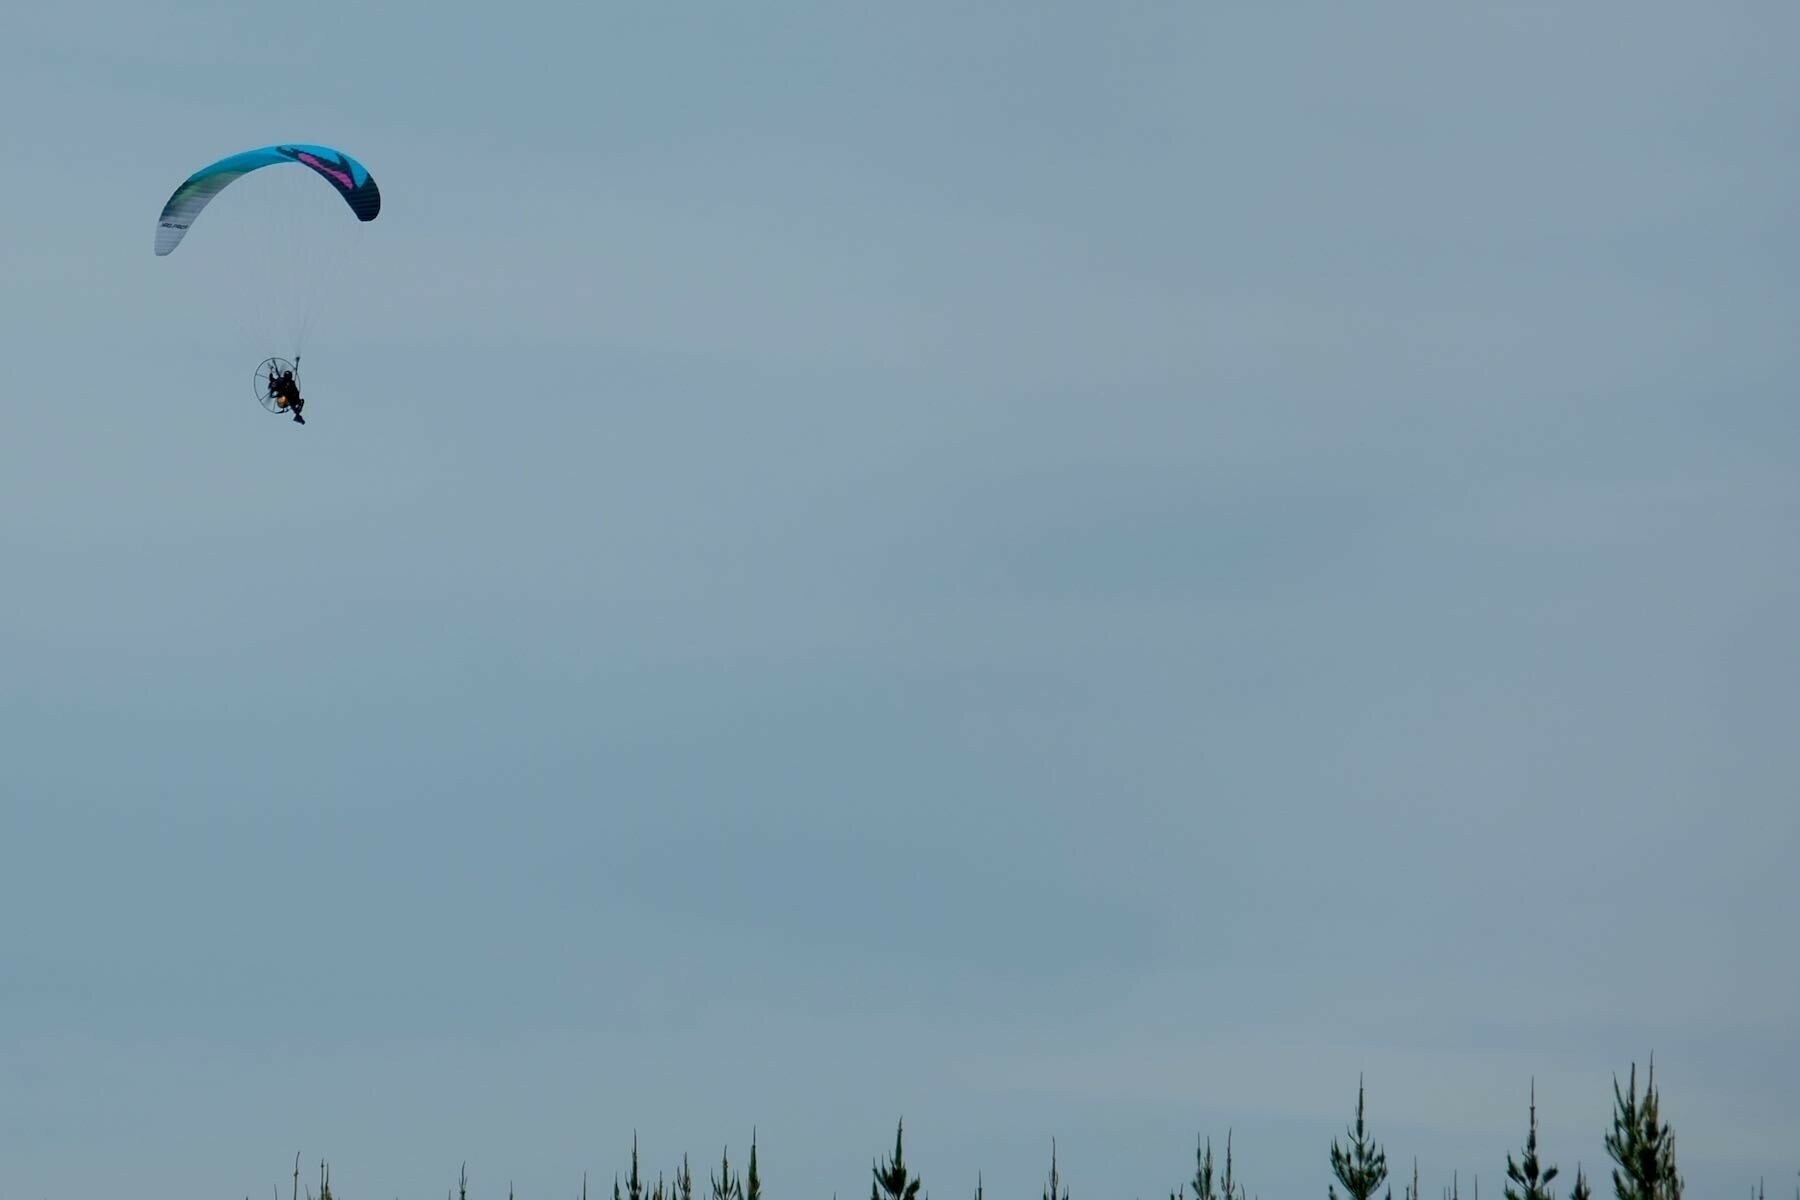 Microlight flyer below parachute near tree tops.